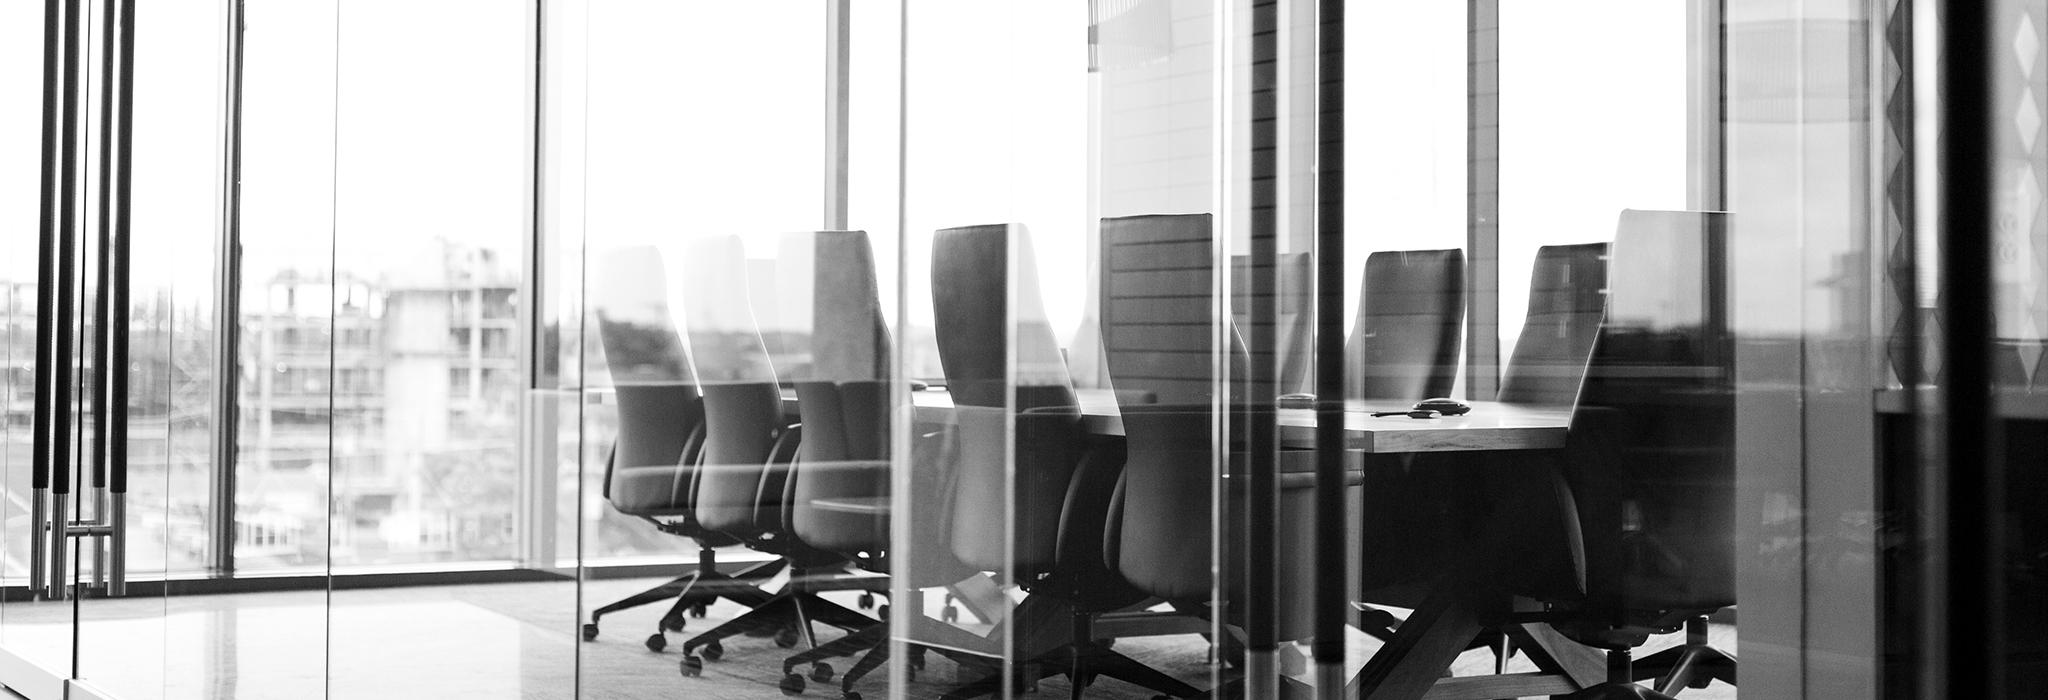 Boardroom - Drew Beamer via Unsplash